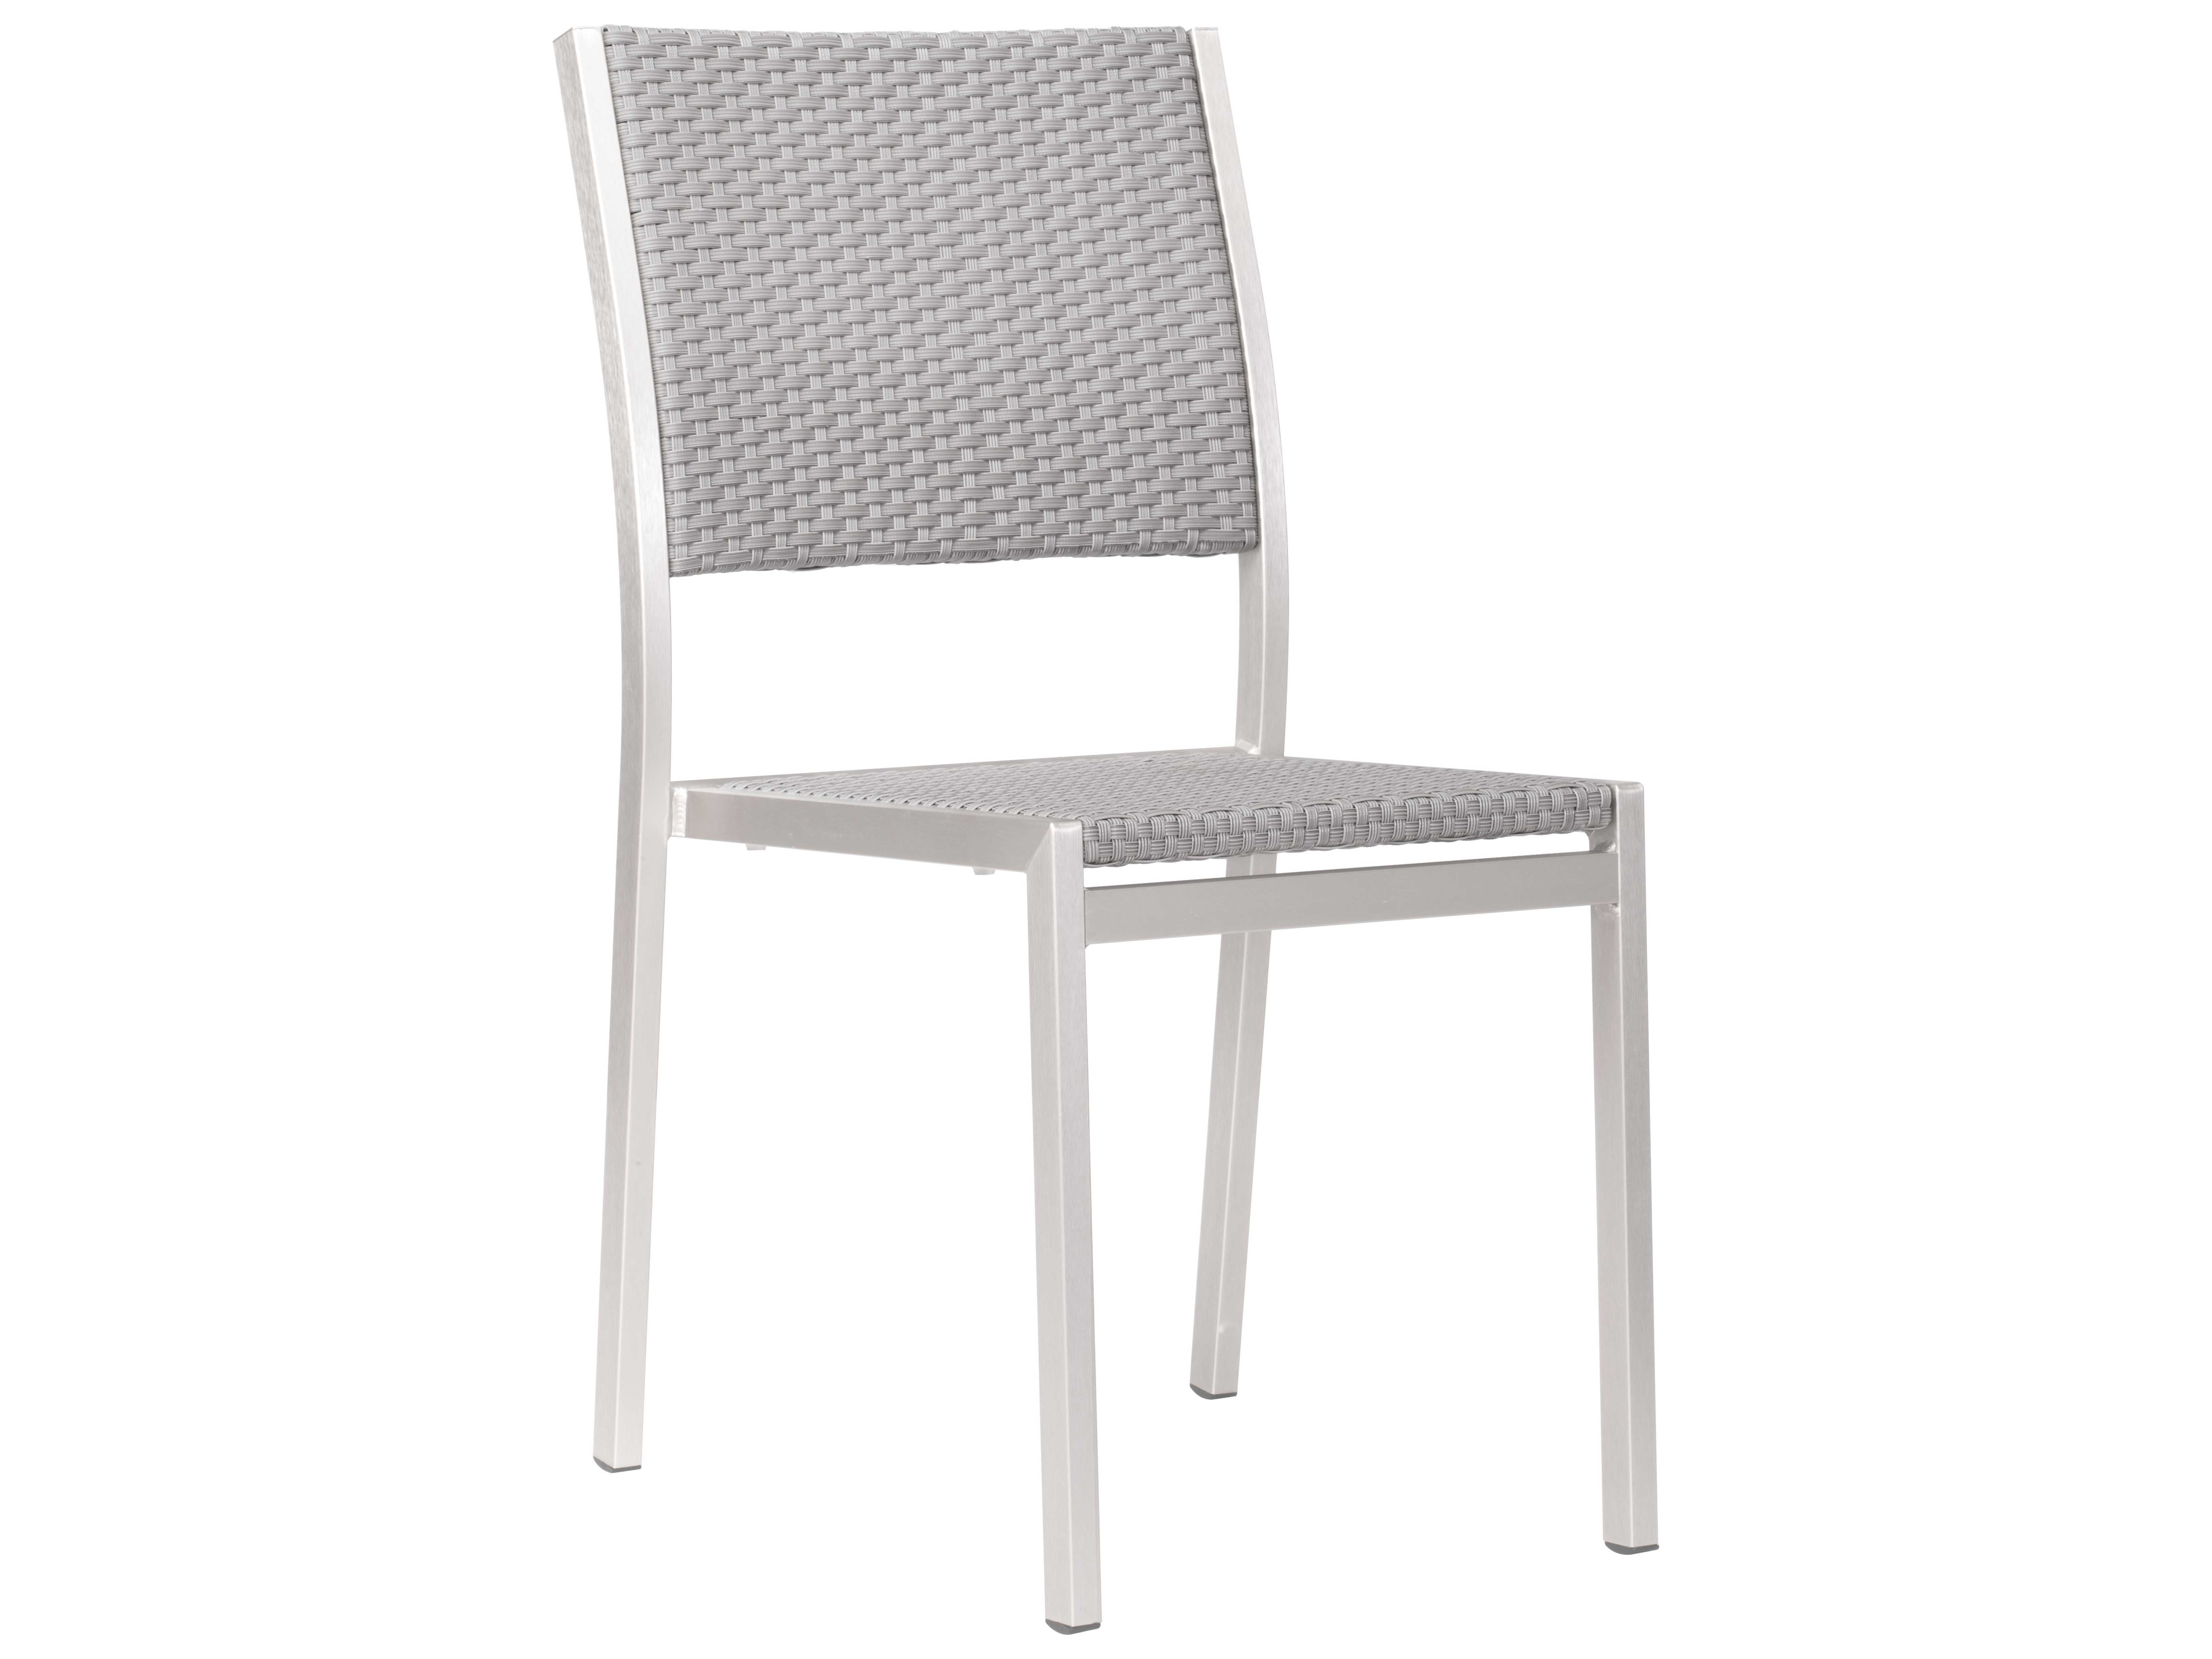 Marvelous Zuo Outdoor Metropolitan Aluminum Polyurethane Dining Armless Chair Sold In 2 Bralicious Painted Fabric Chair Ideas Braliciousco